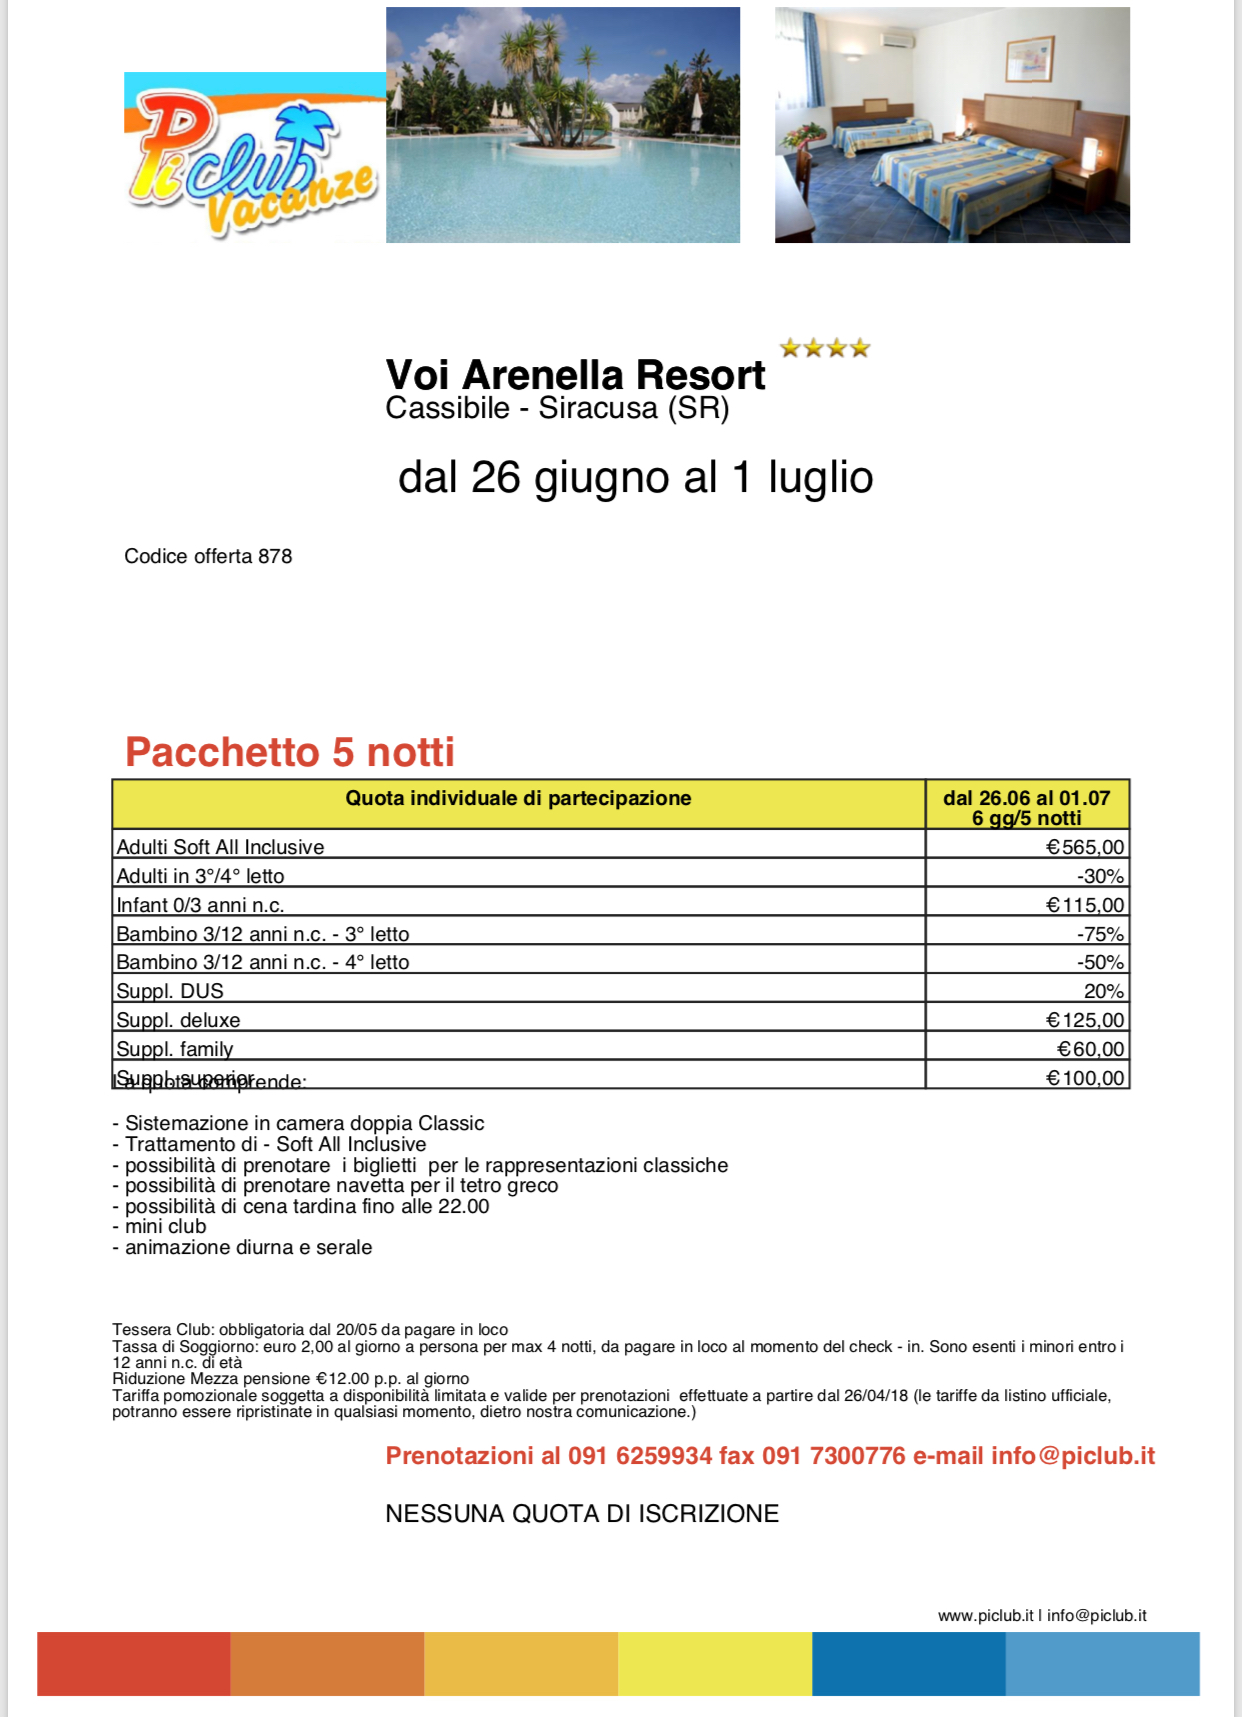 Pi club arenella resort promo